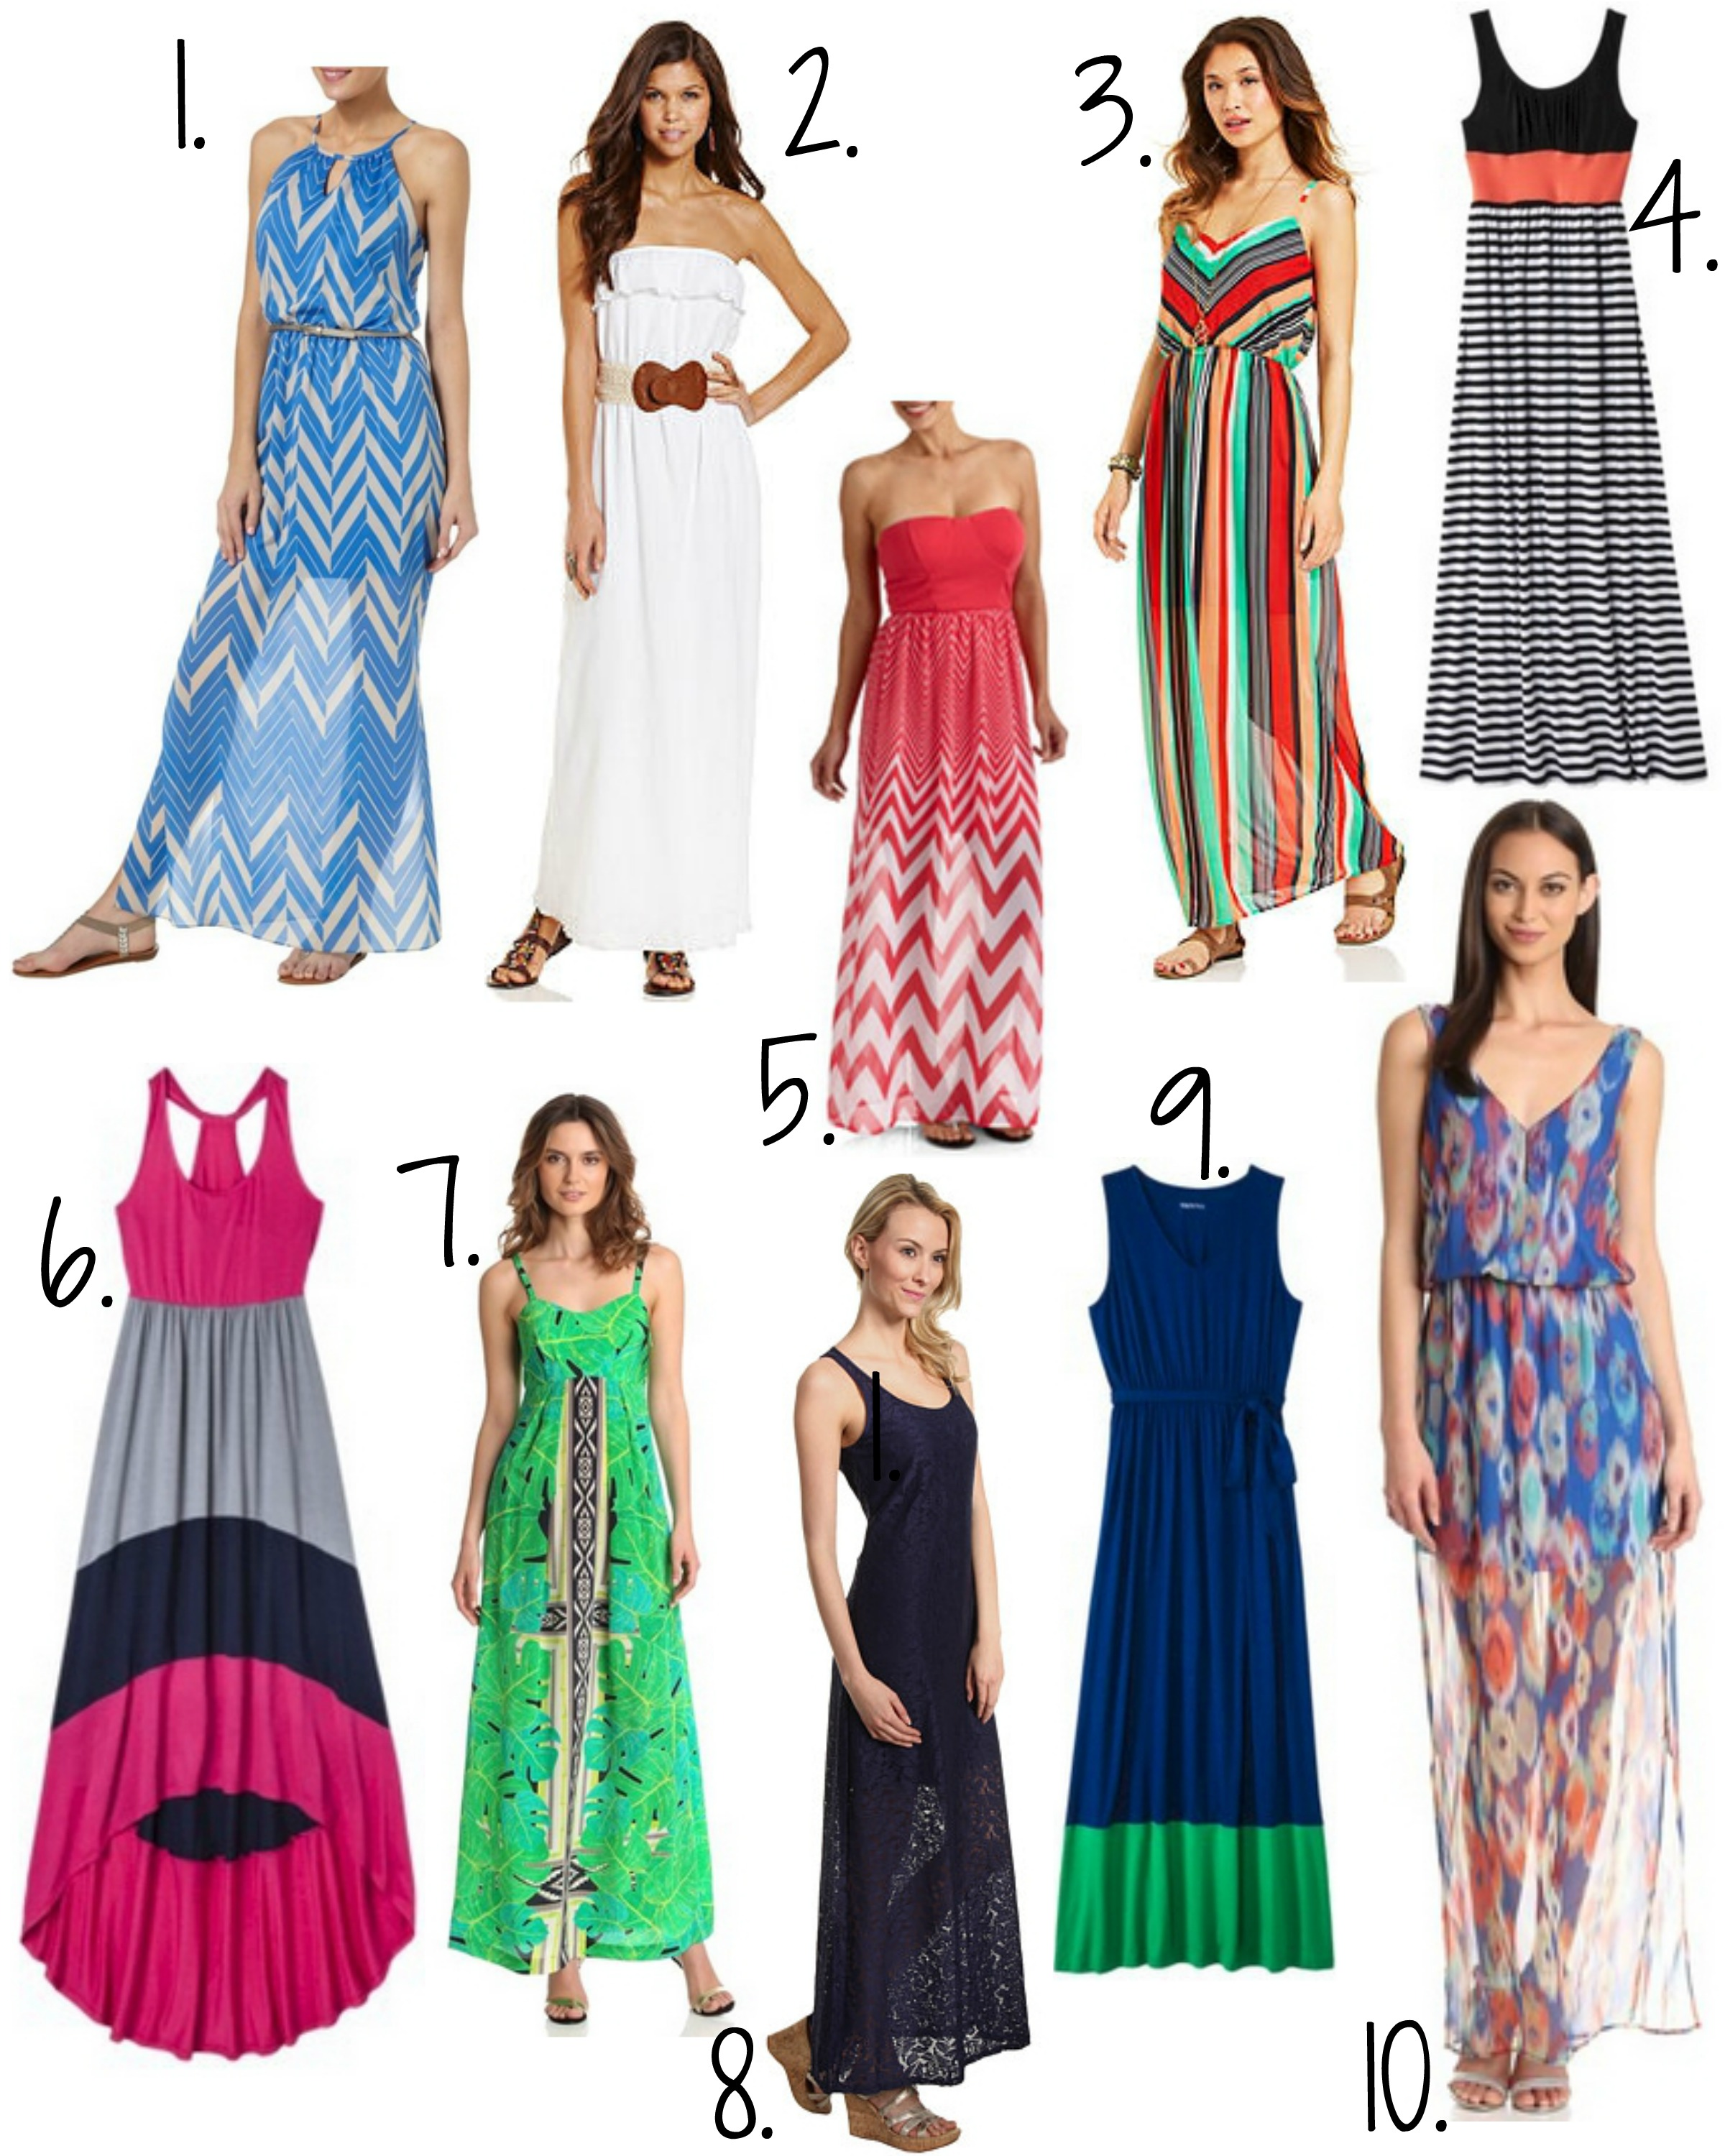 Frugal #Fashion: Maxi Dresses for Summer - Mommies with Cents